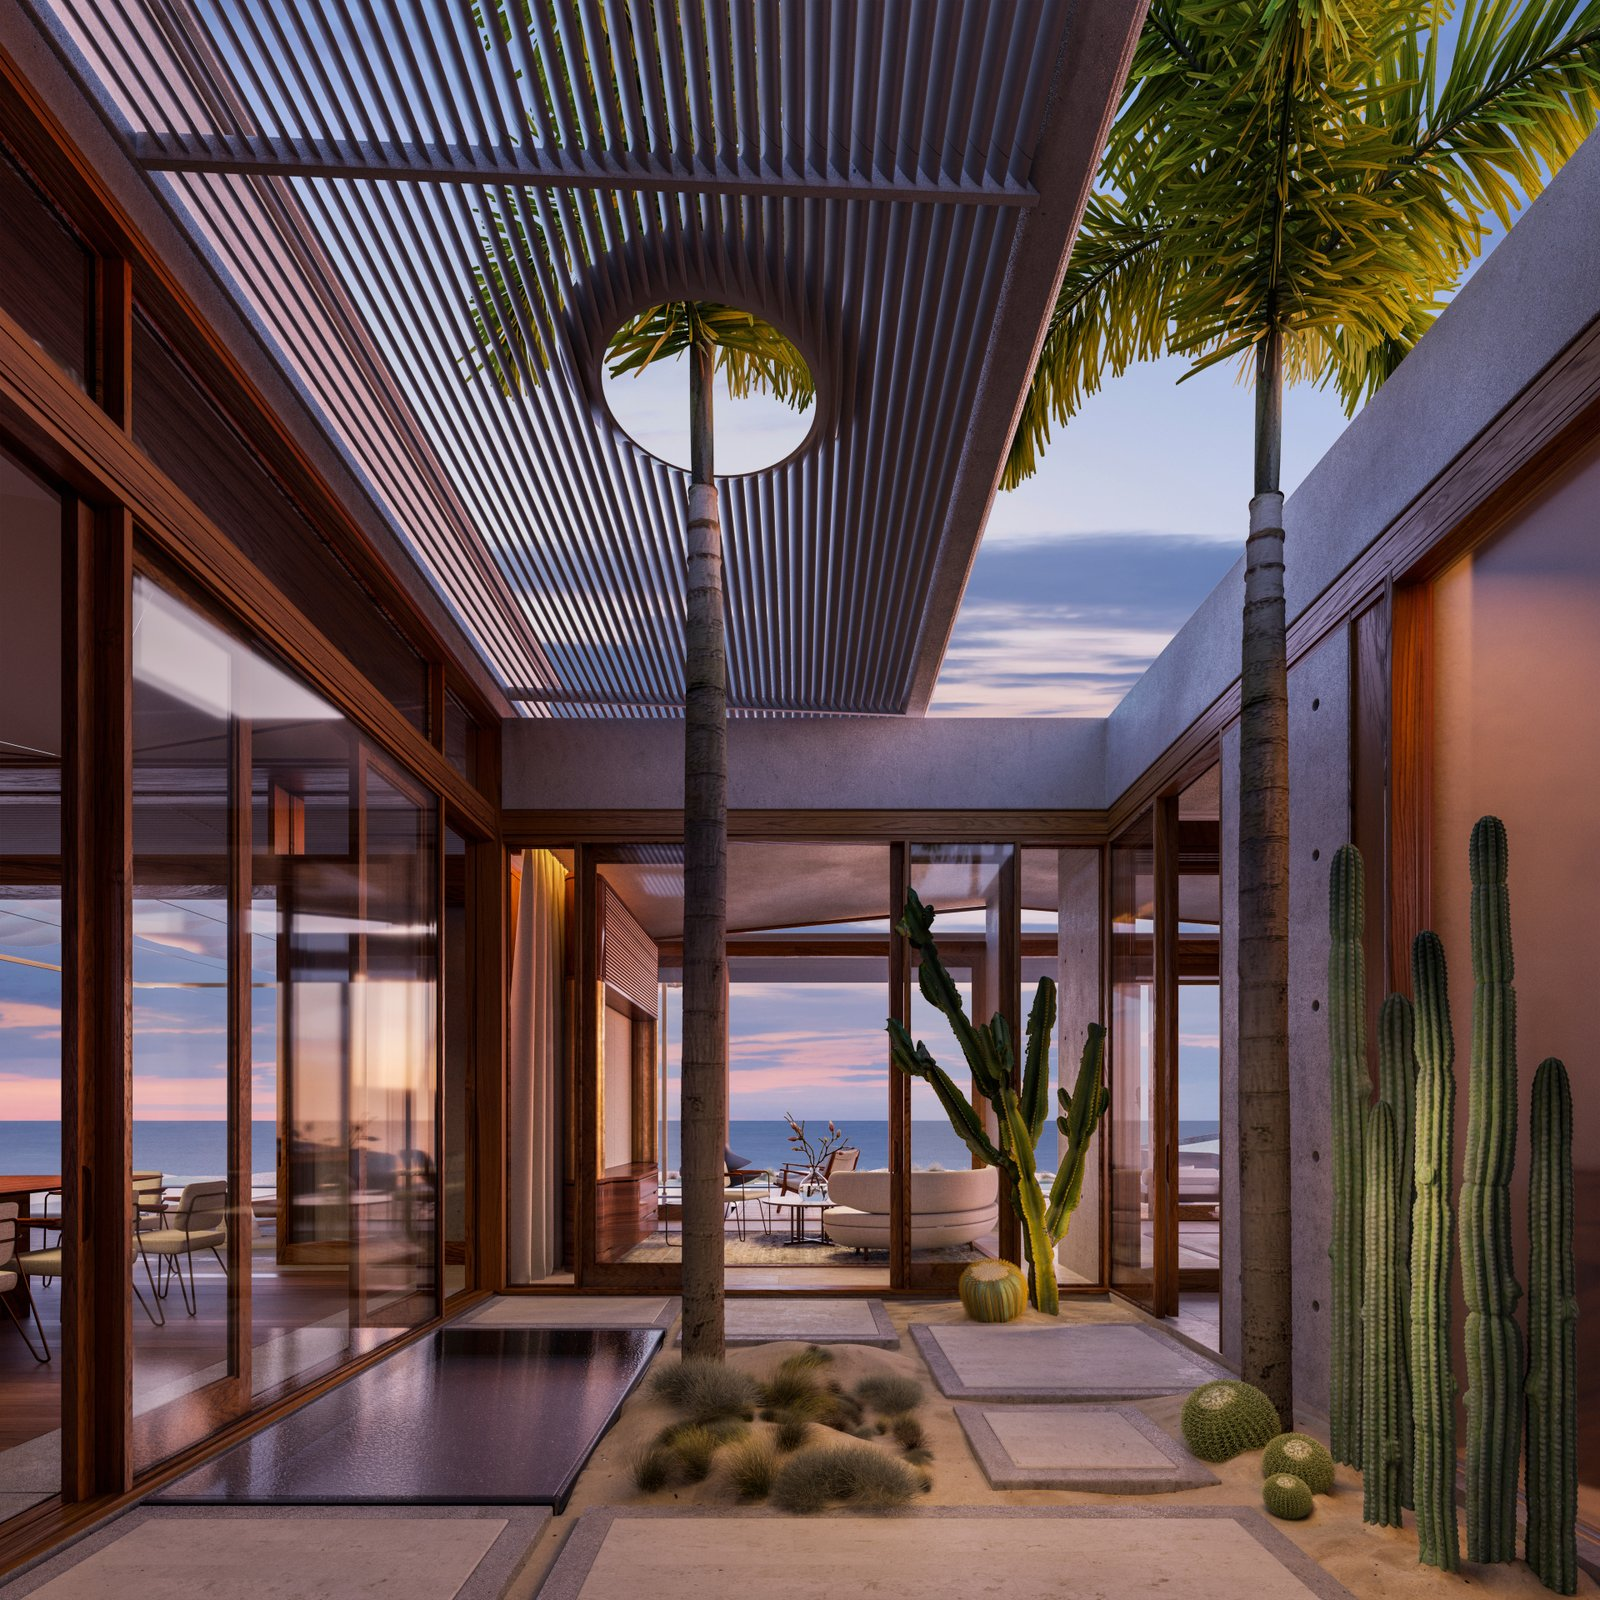 Enfolded into the westernmost edge of the Costa Palmas community, the grounds will include a Robert Trent Jones II golf course, 18-acres of organic farms, and a private members-only Costa Palmas Beach and Yacht Club to for residences. For those seeking permanent bliss, there will be an initial release of 24 whole-ownership residences ranging from four to seven bedrooms for sale; tucked in various, but all equally mesmerizing locations including the edge of the dunes with a panoramic view of the ocean, facing the golf course, or nestled within the organic farms. Owners will have the opportunity to collaborate with Heah & Co. to customize their homes with options of pavilions for bedrooms, theater, fitness and yoga, or a family room.